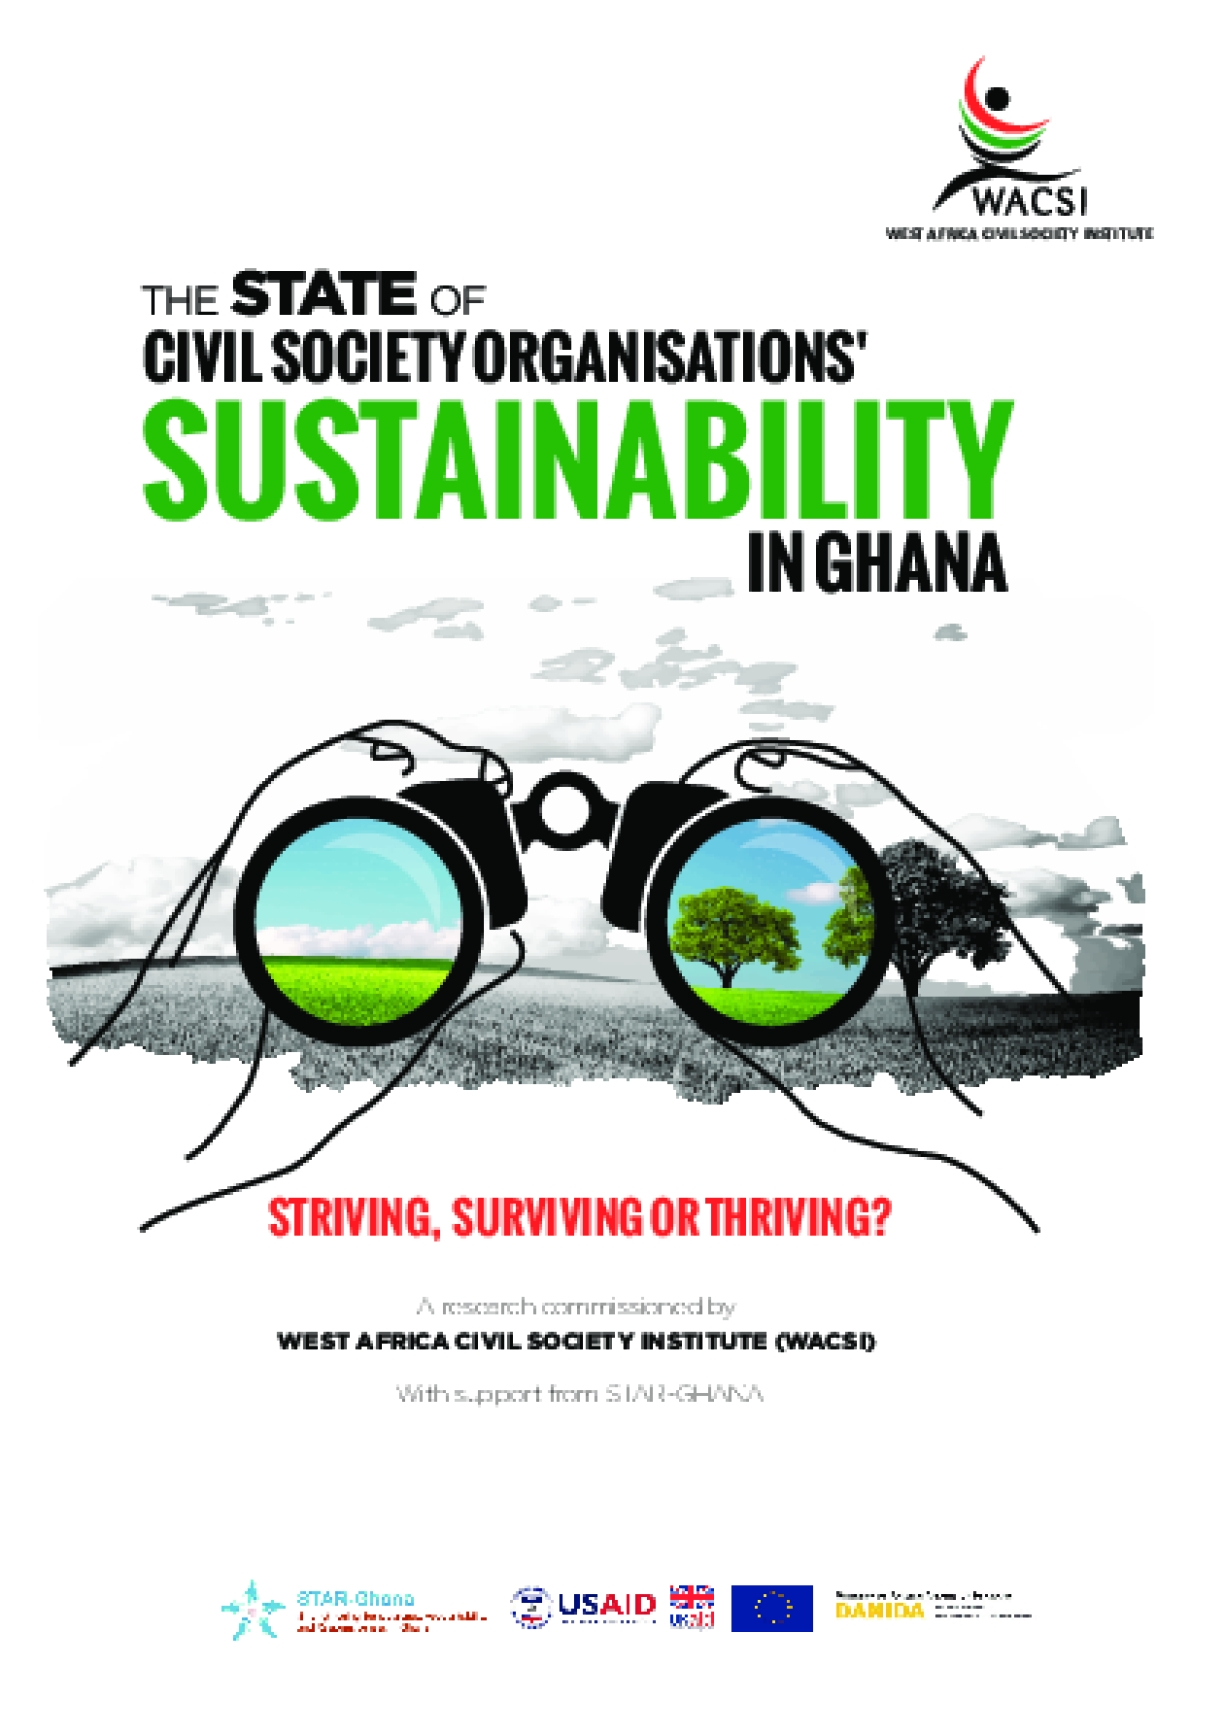 The State of Civil Society Organisations Sustainability in Ghana